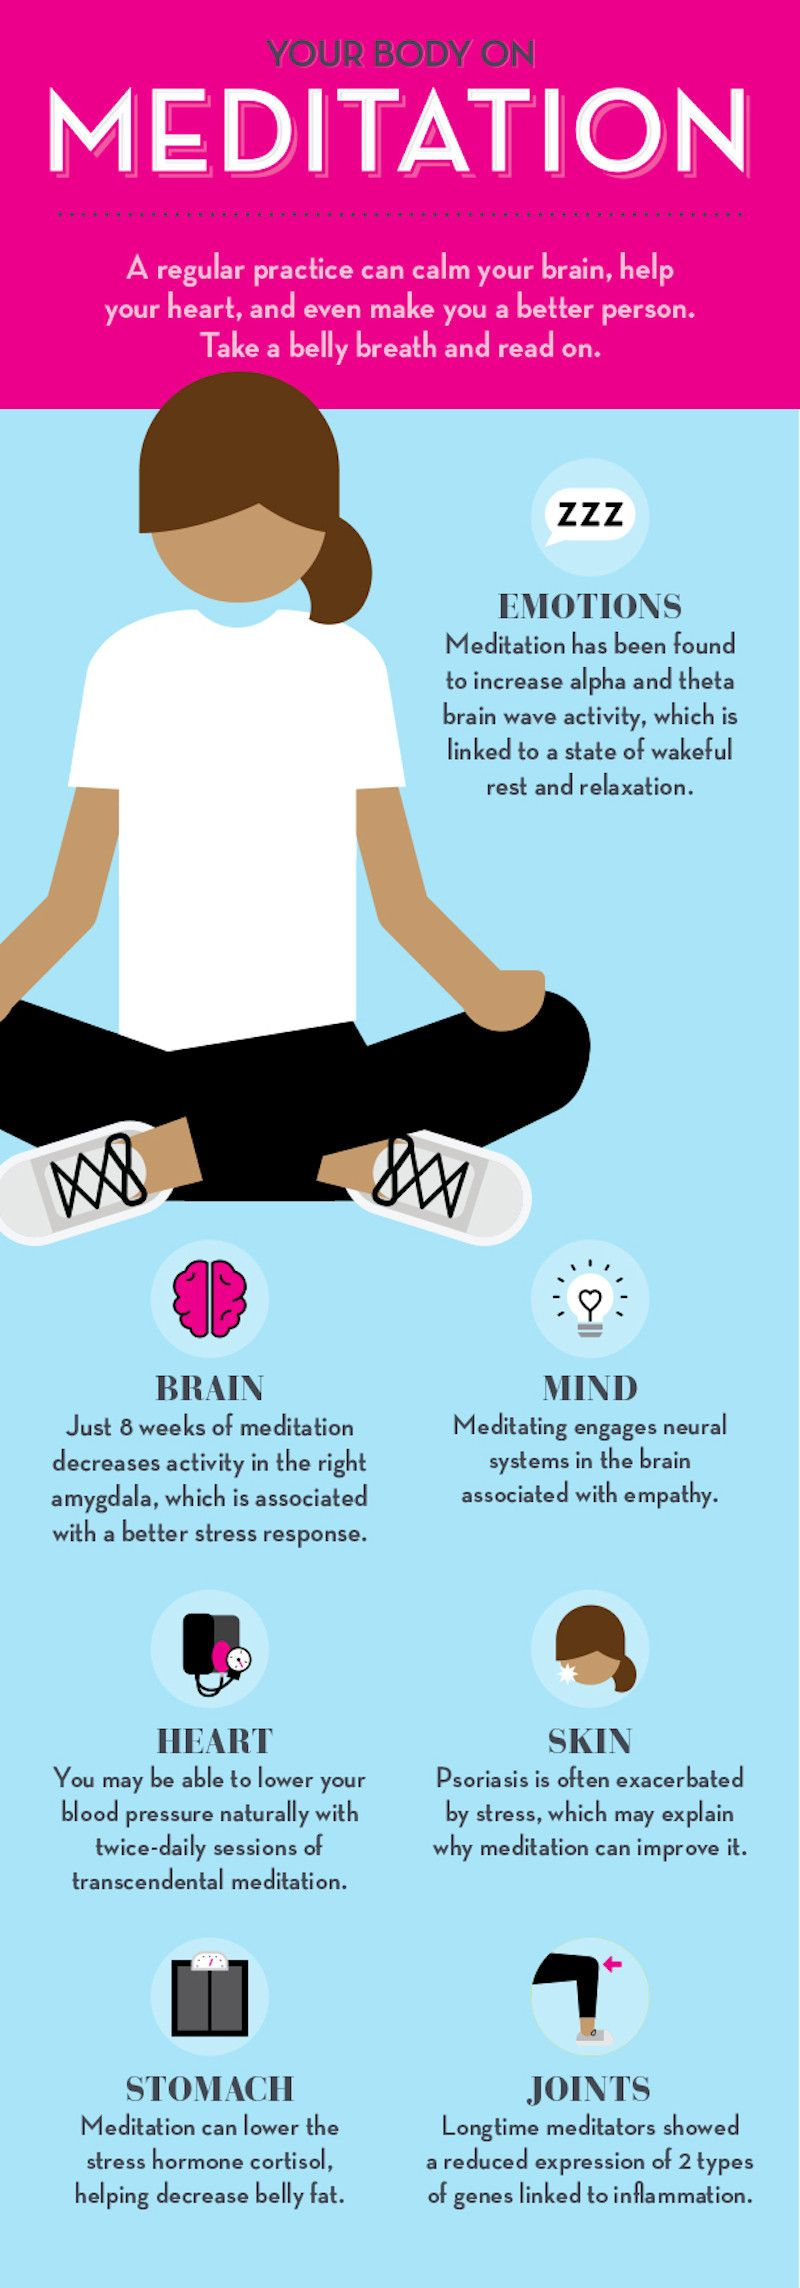 4 Ways How Meditation Can Benefit Your Health